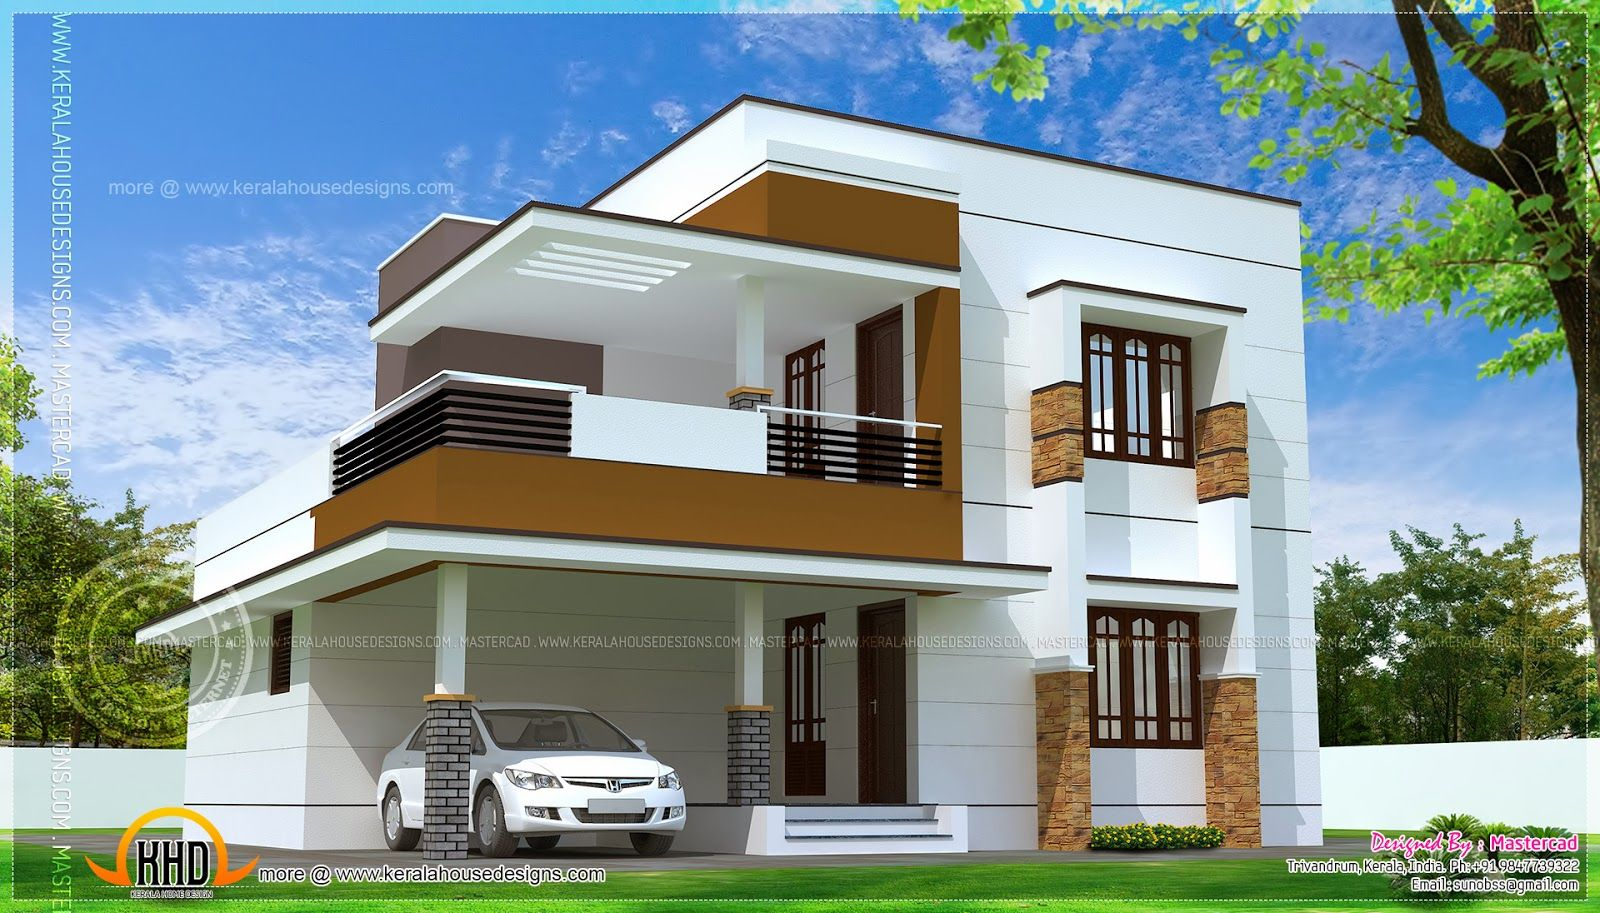 Simple House Image Modern Luxury House With Cellar Floor House Plans